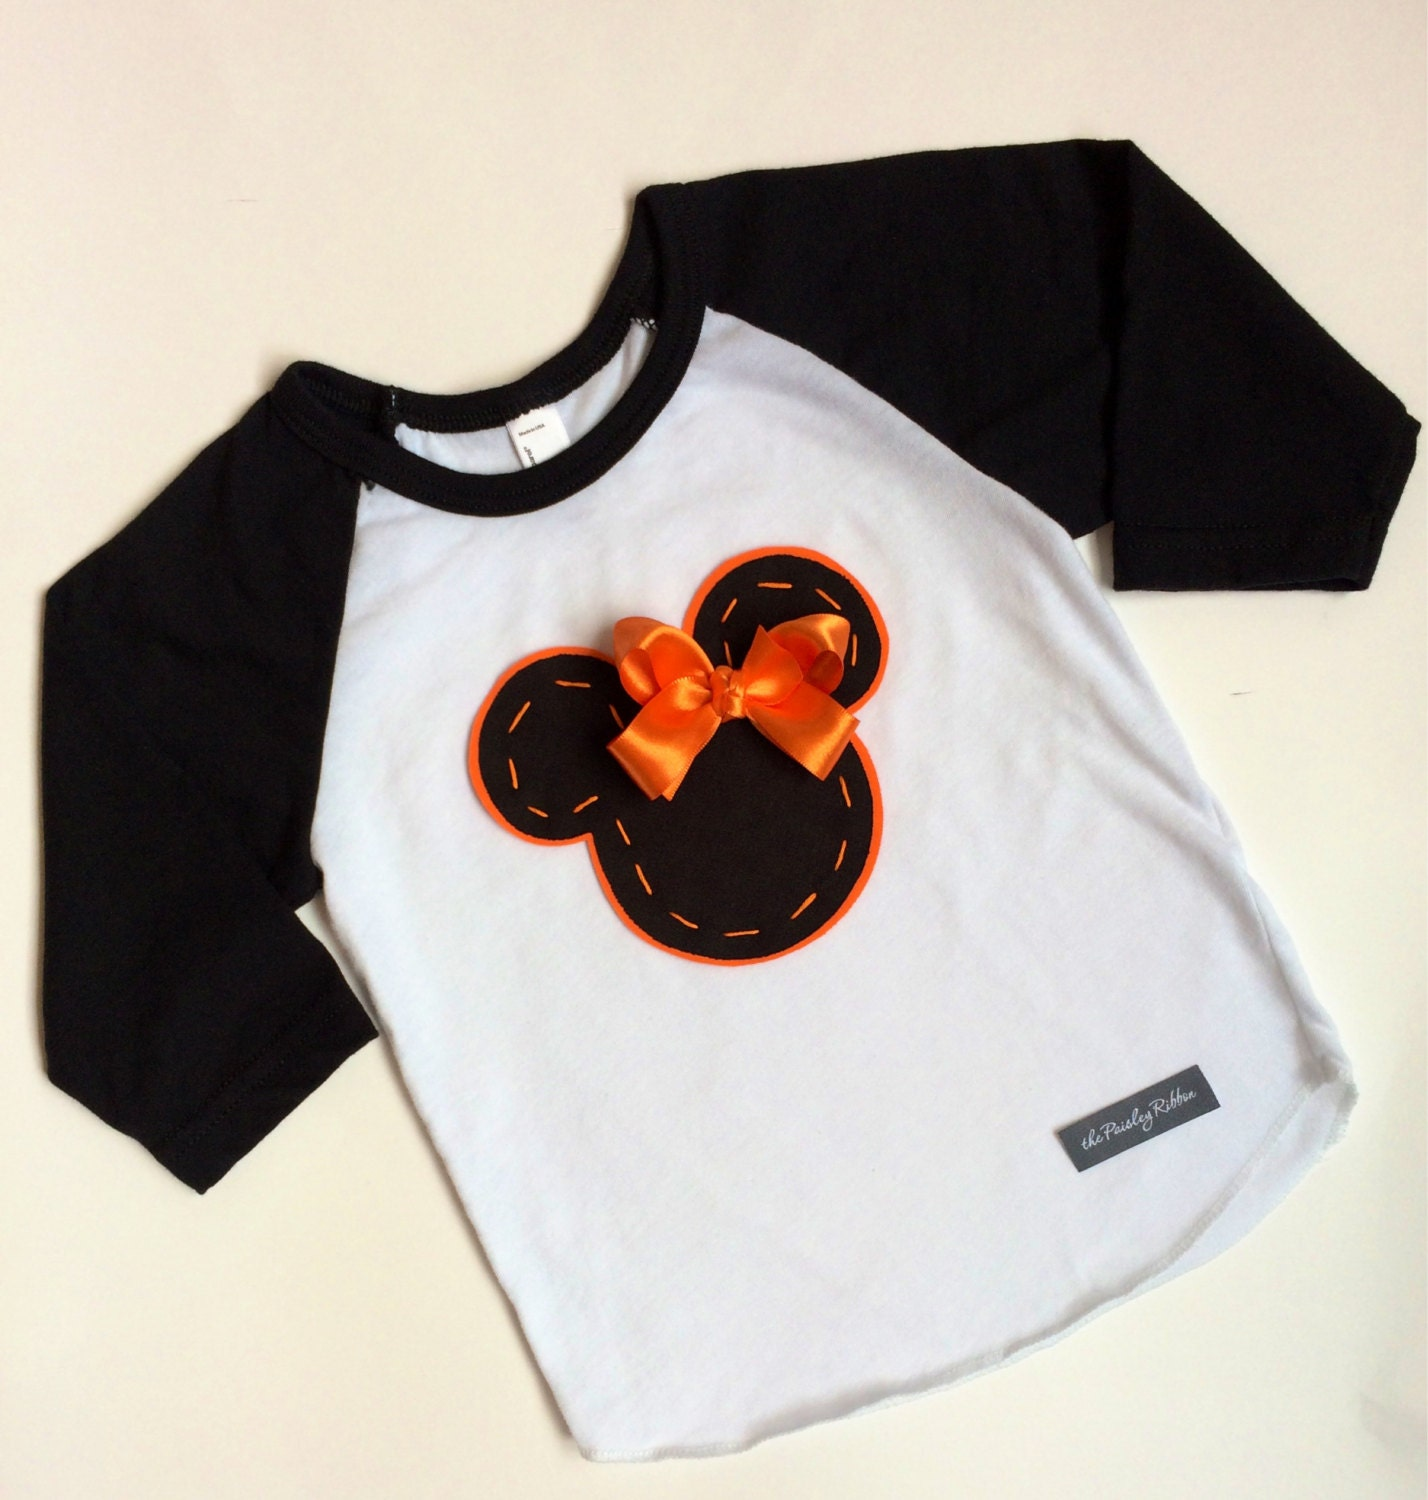 Disney Halloween Shirts Etsy.Disney Halloween Shirts For Couples